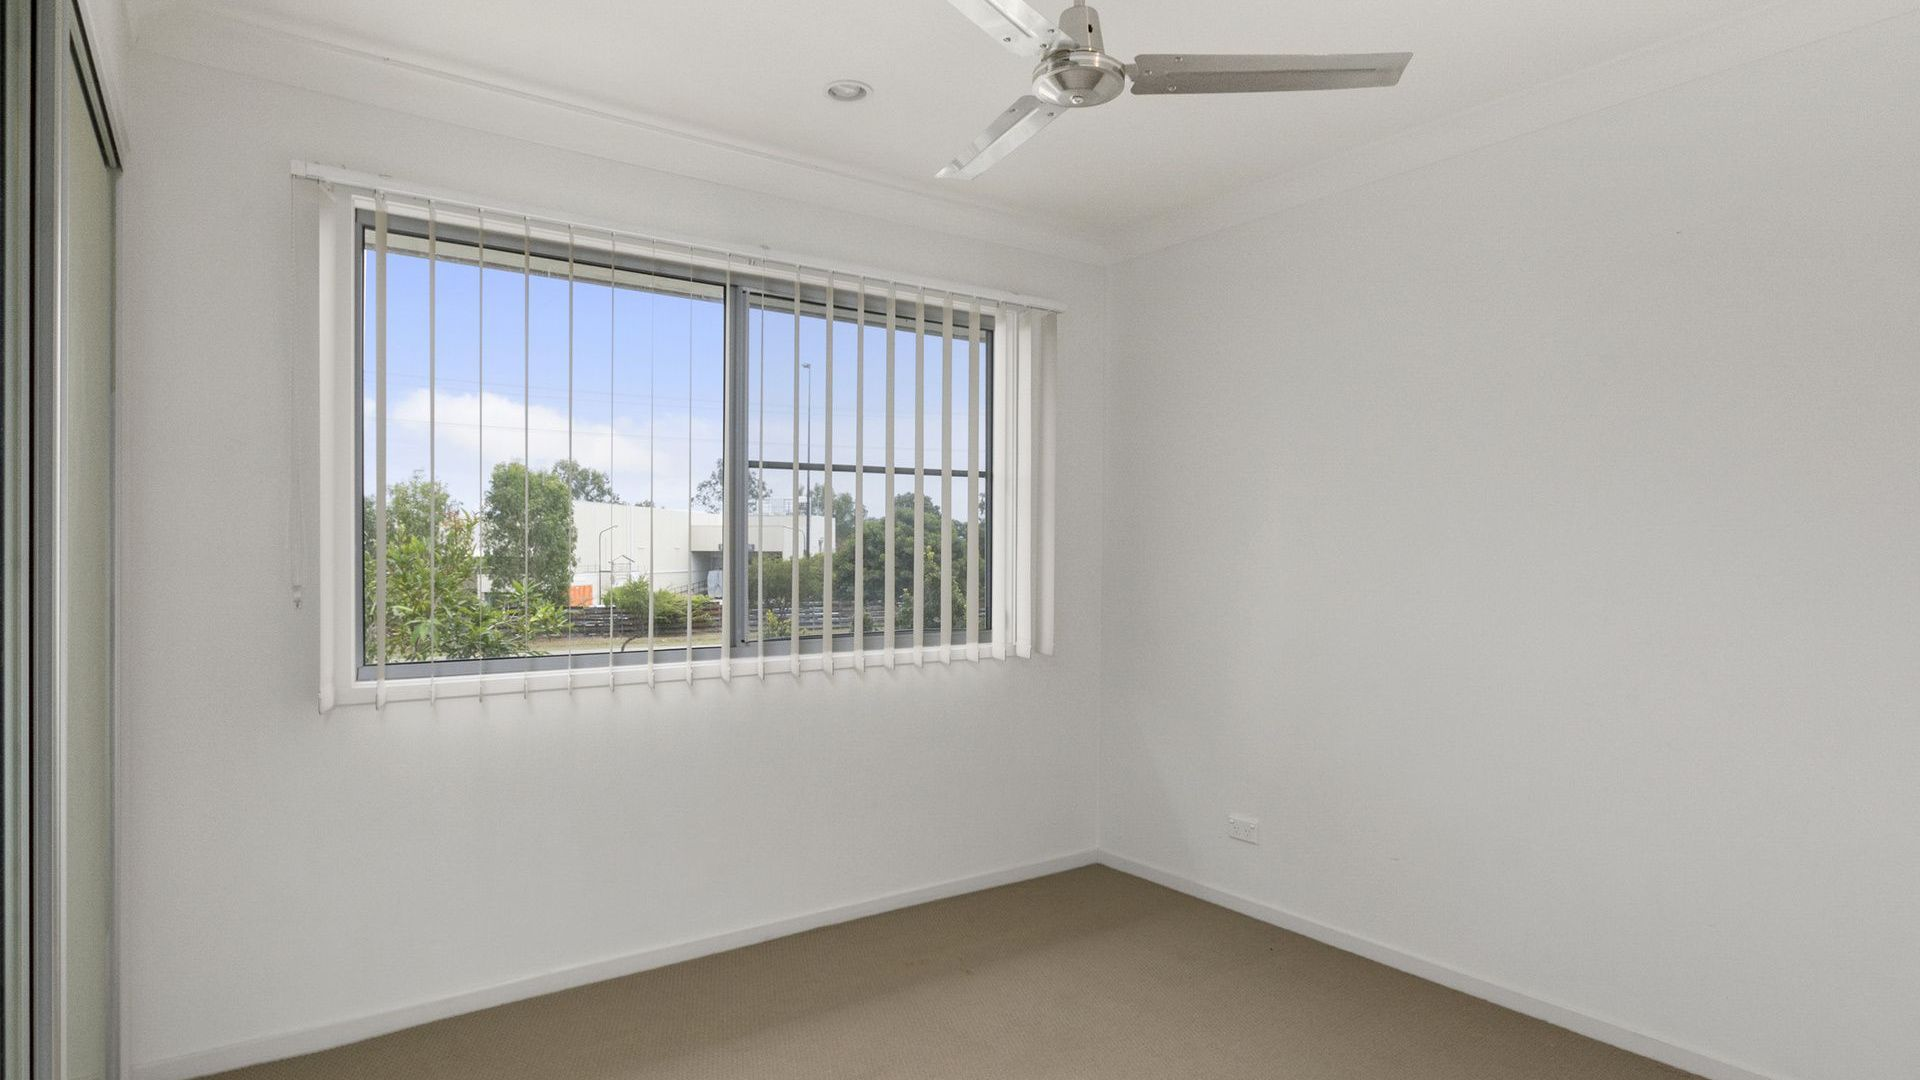 18/15 Workshops Street, Brassall QLD 4305, Image 1